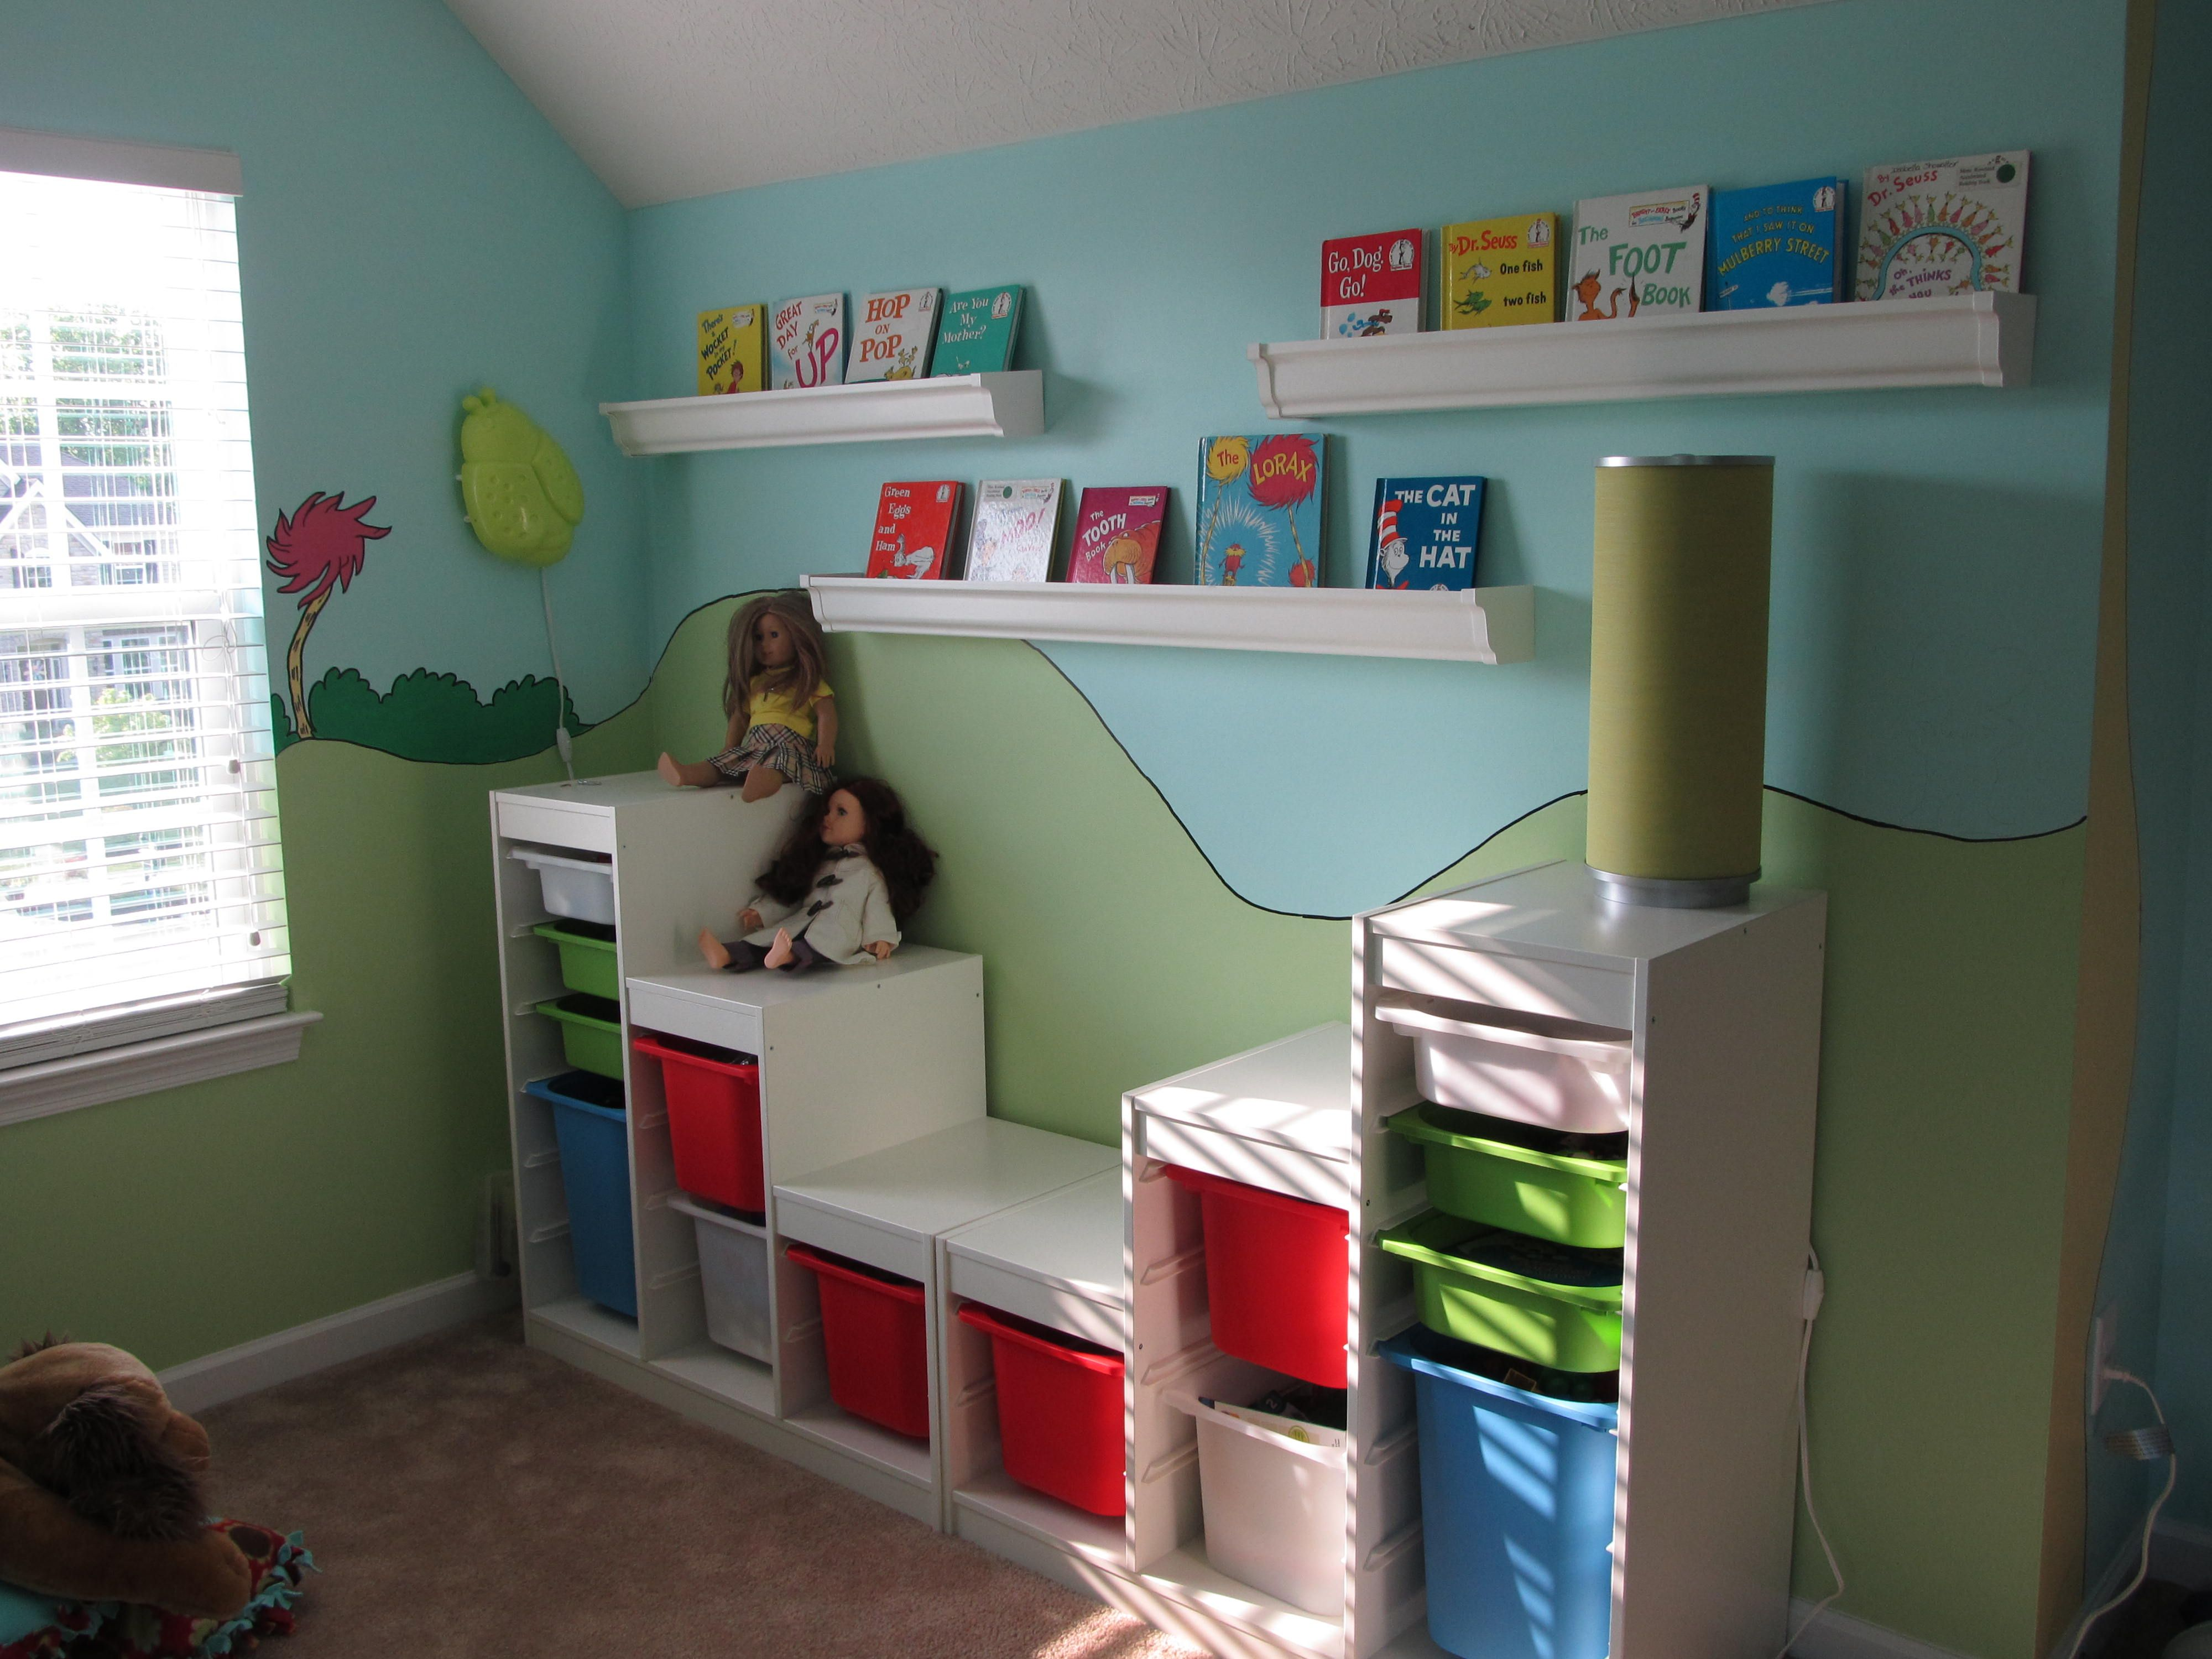 Dr Seuss Theme Playroom Trofast Shelves From Ikea Rain